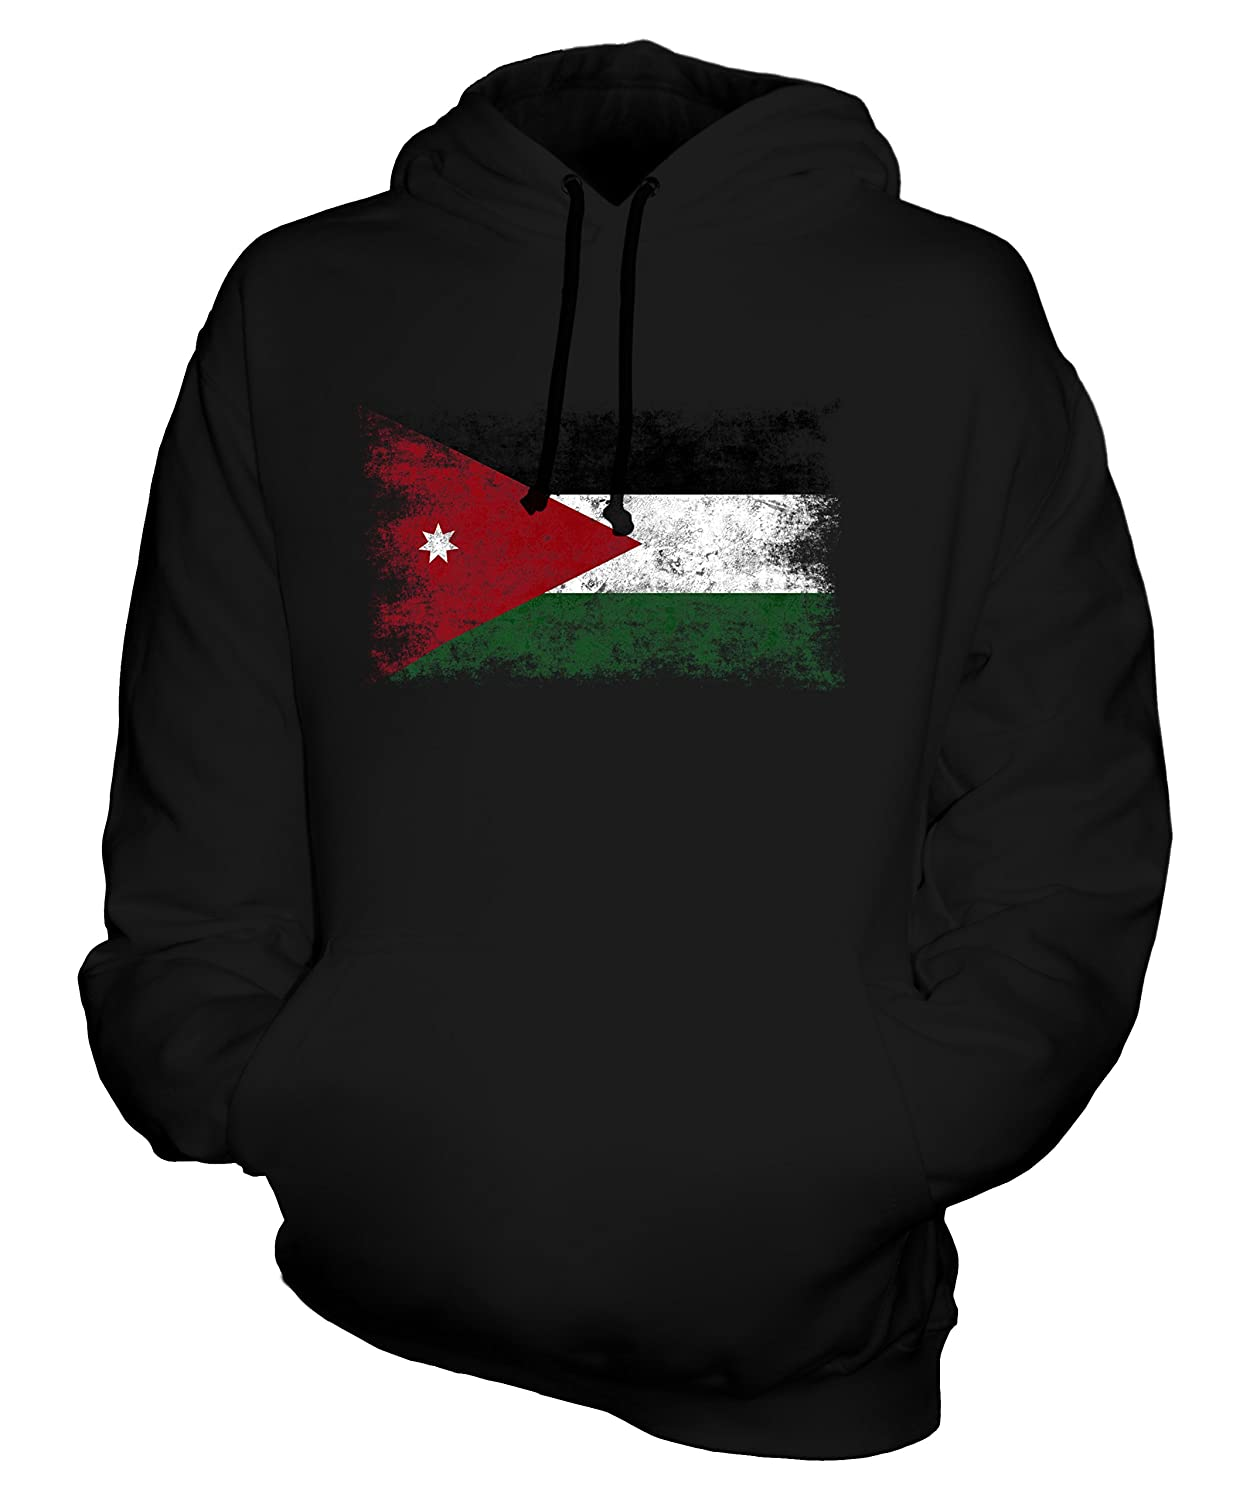 08b8d55d4247d7 CandyMix Unisex Jordan Distressed Flag Mens Womens Hoodie at Amazon Men s  Clothing store